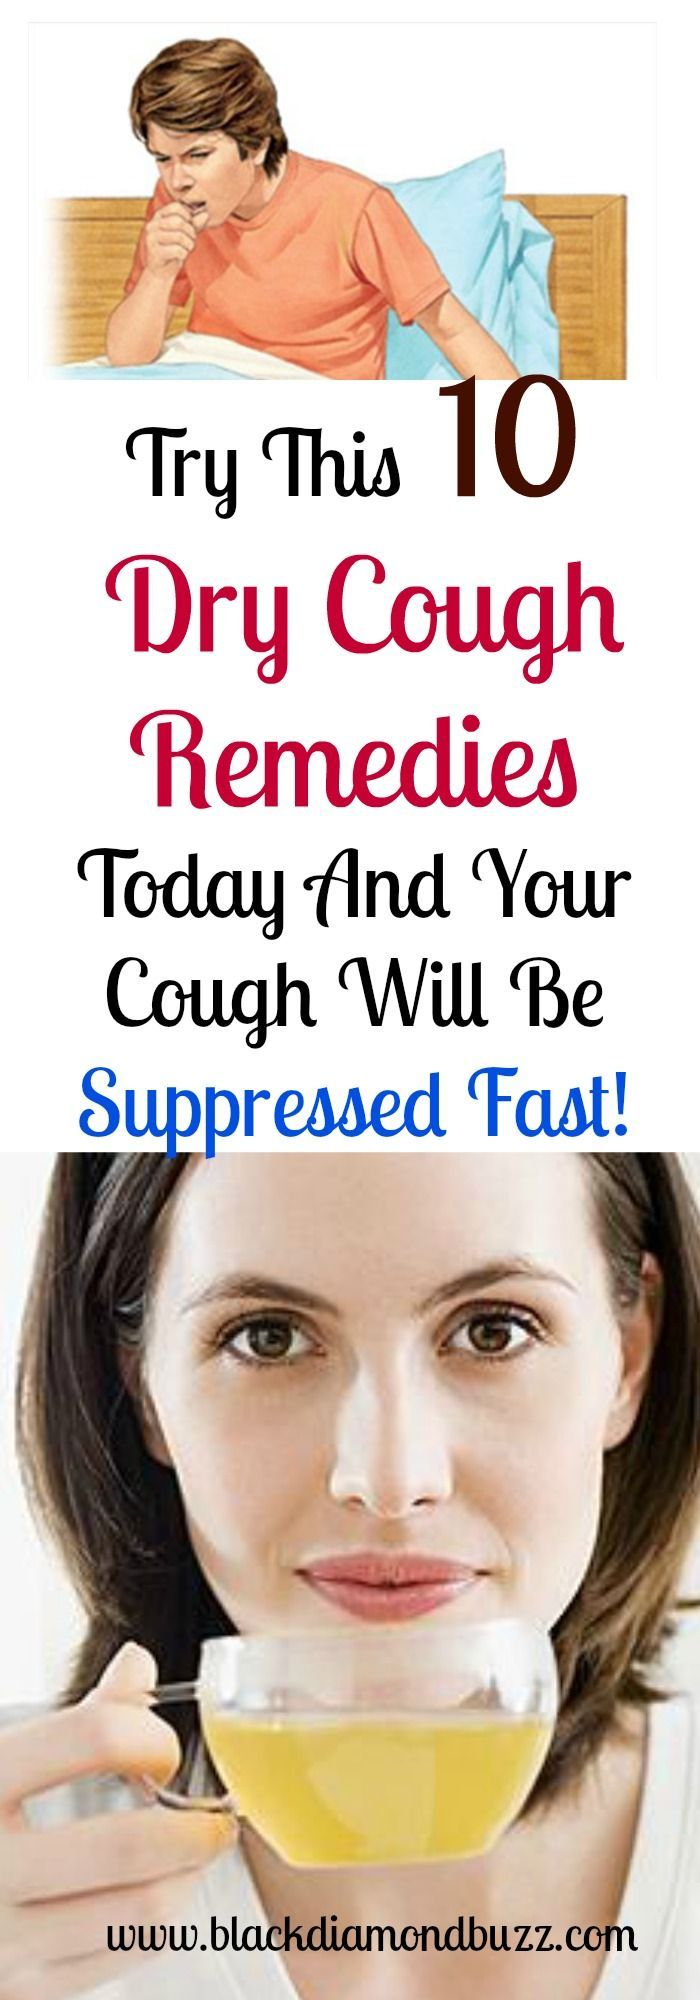 Best 10 Dry Cough Remedies and Cough Suppressants That